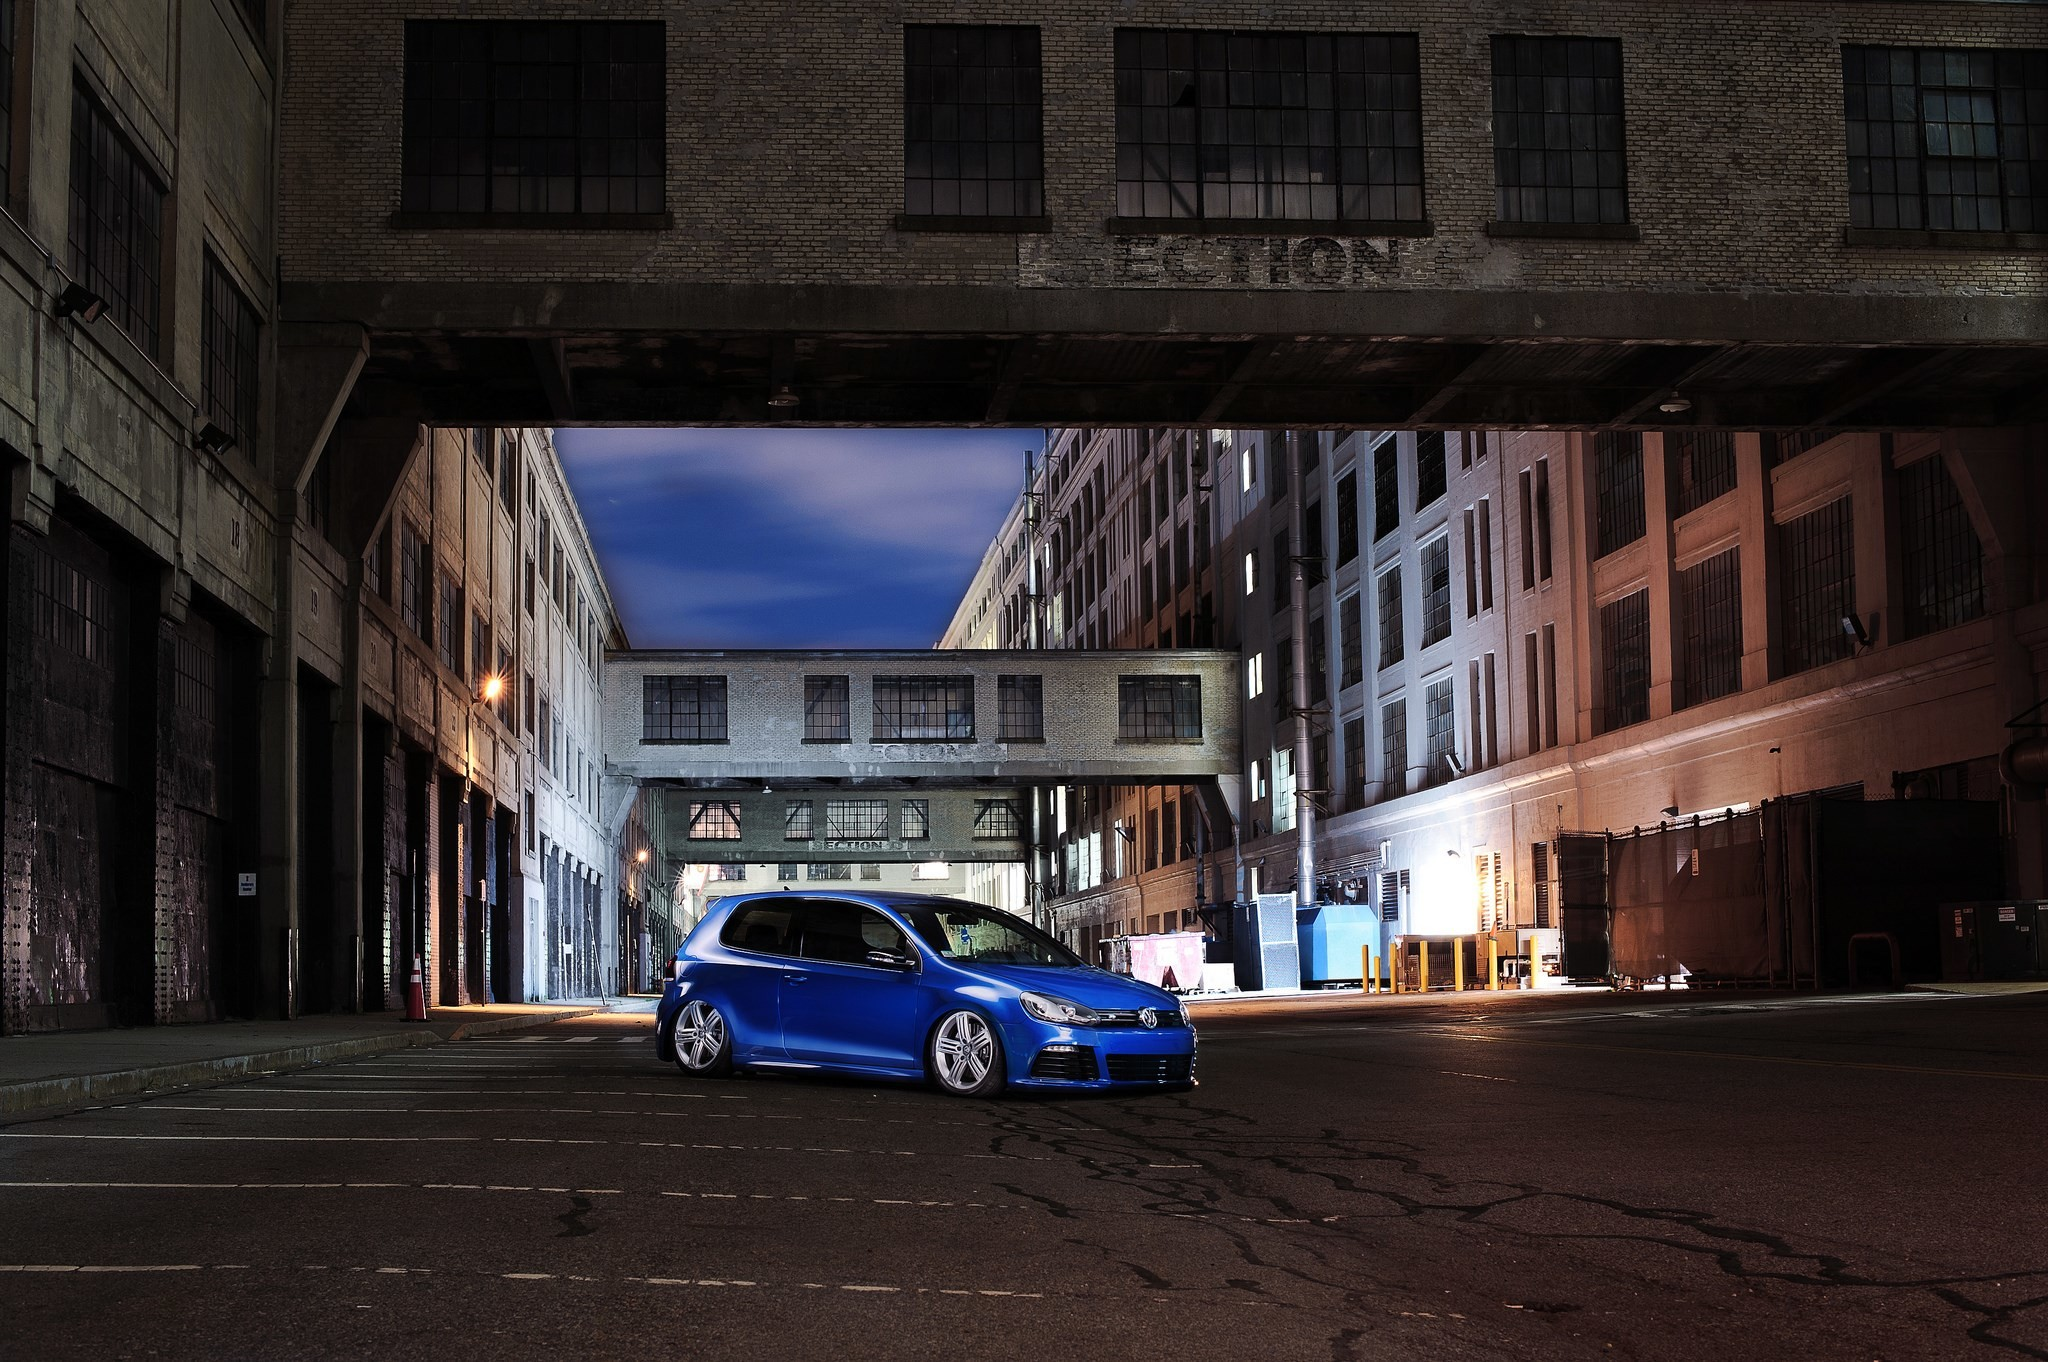 volkswagen golf theme background images (Rockley Nail 2048×1362)